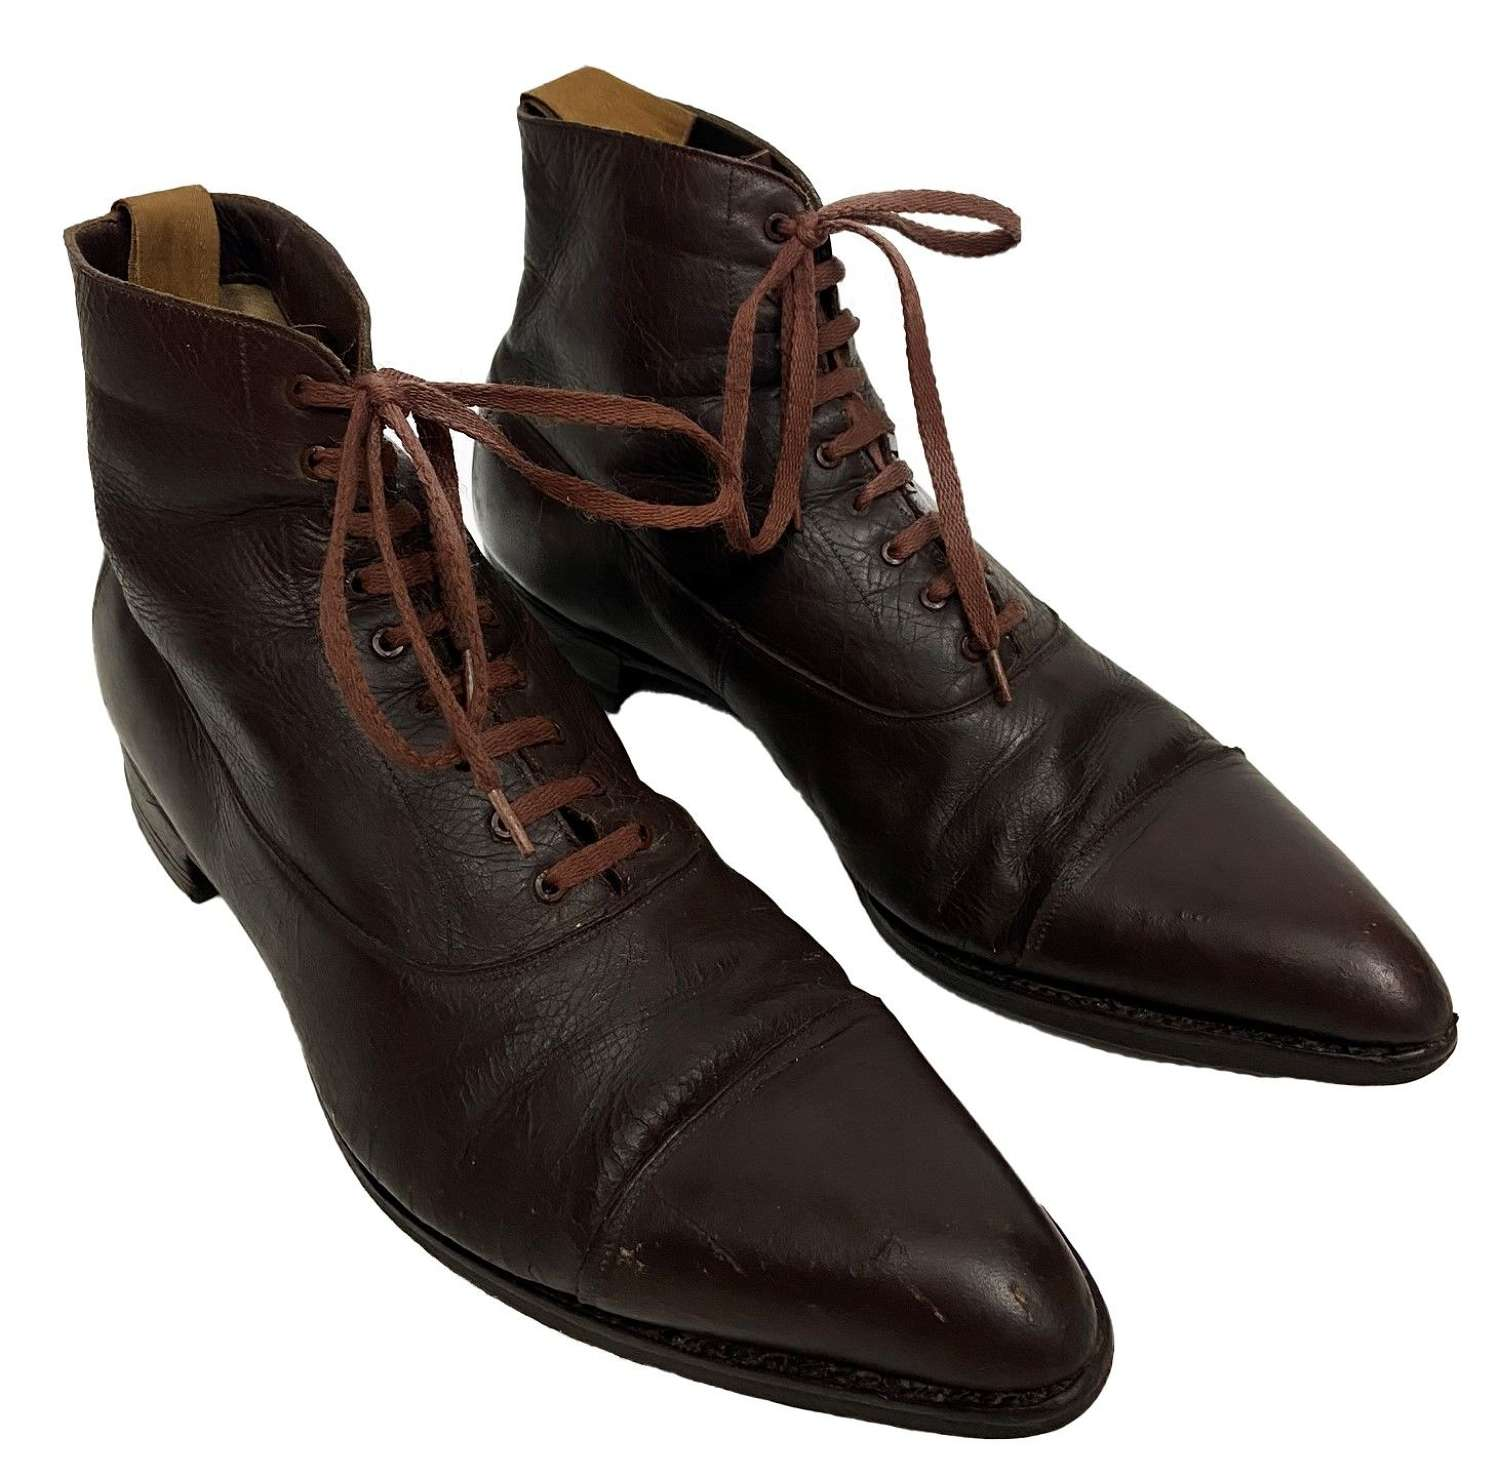 Original Victorian Men's Brown Leather Ankle Boots - Size 7